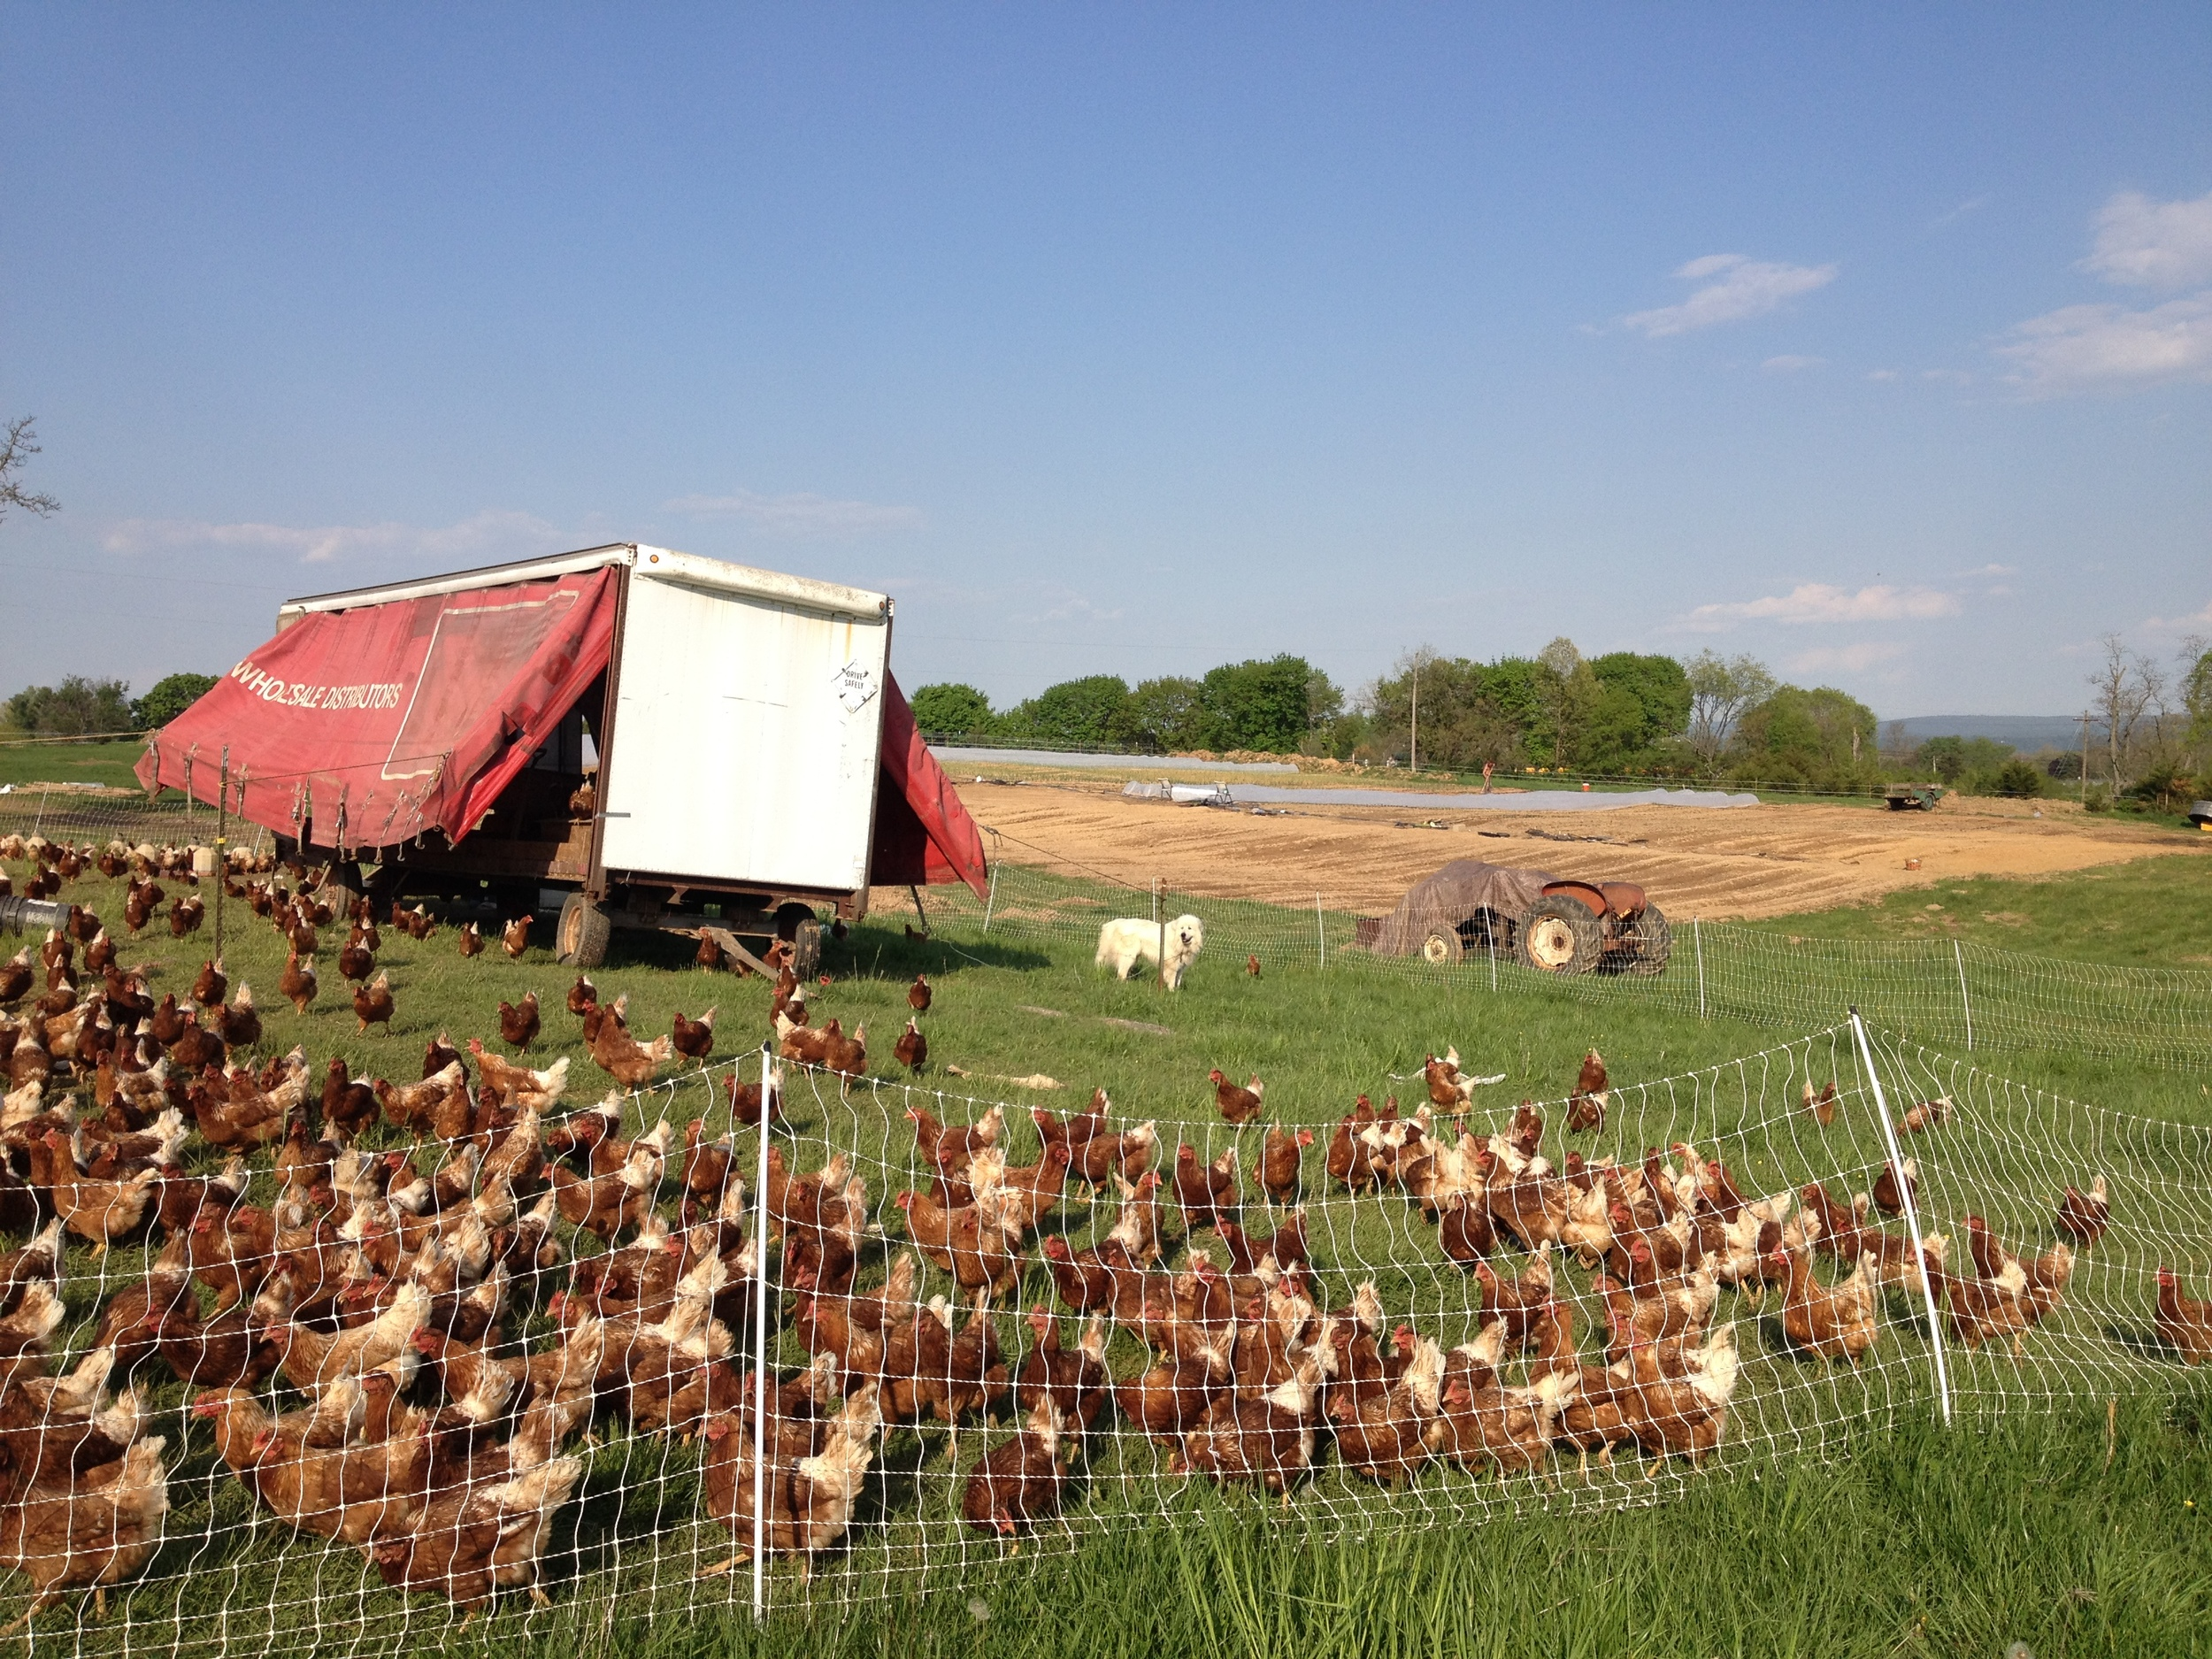 Our flock of pasture-raised laying hens has been with us from our first year along with our Great Pyrenees livestock guardian dogs.